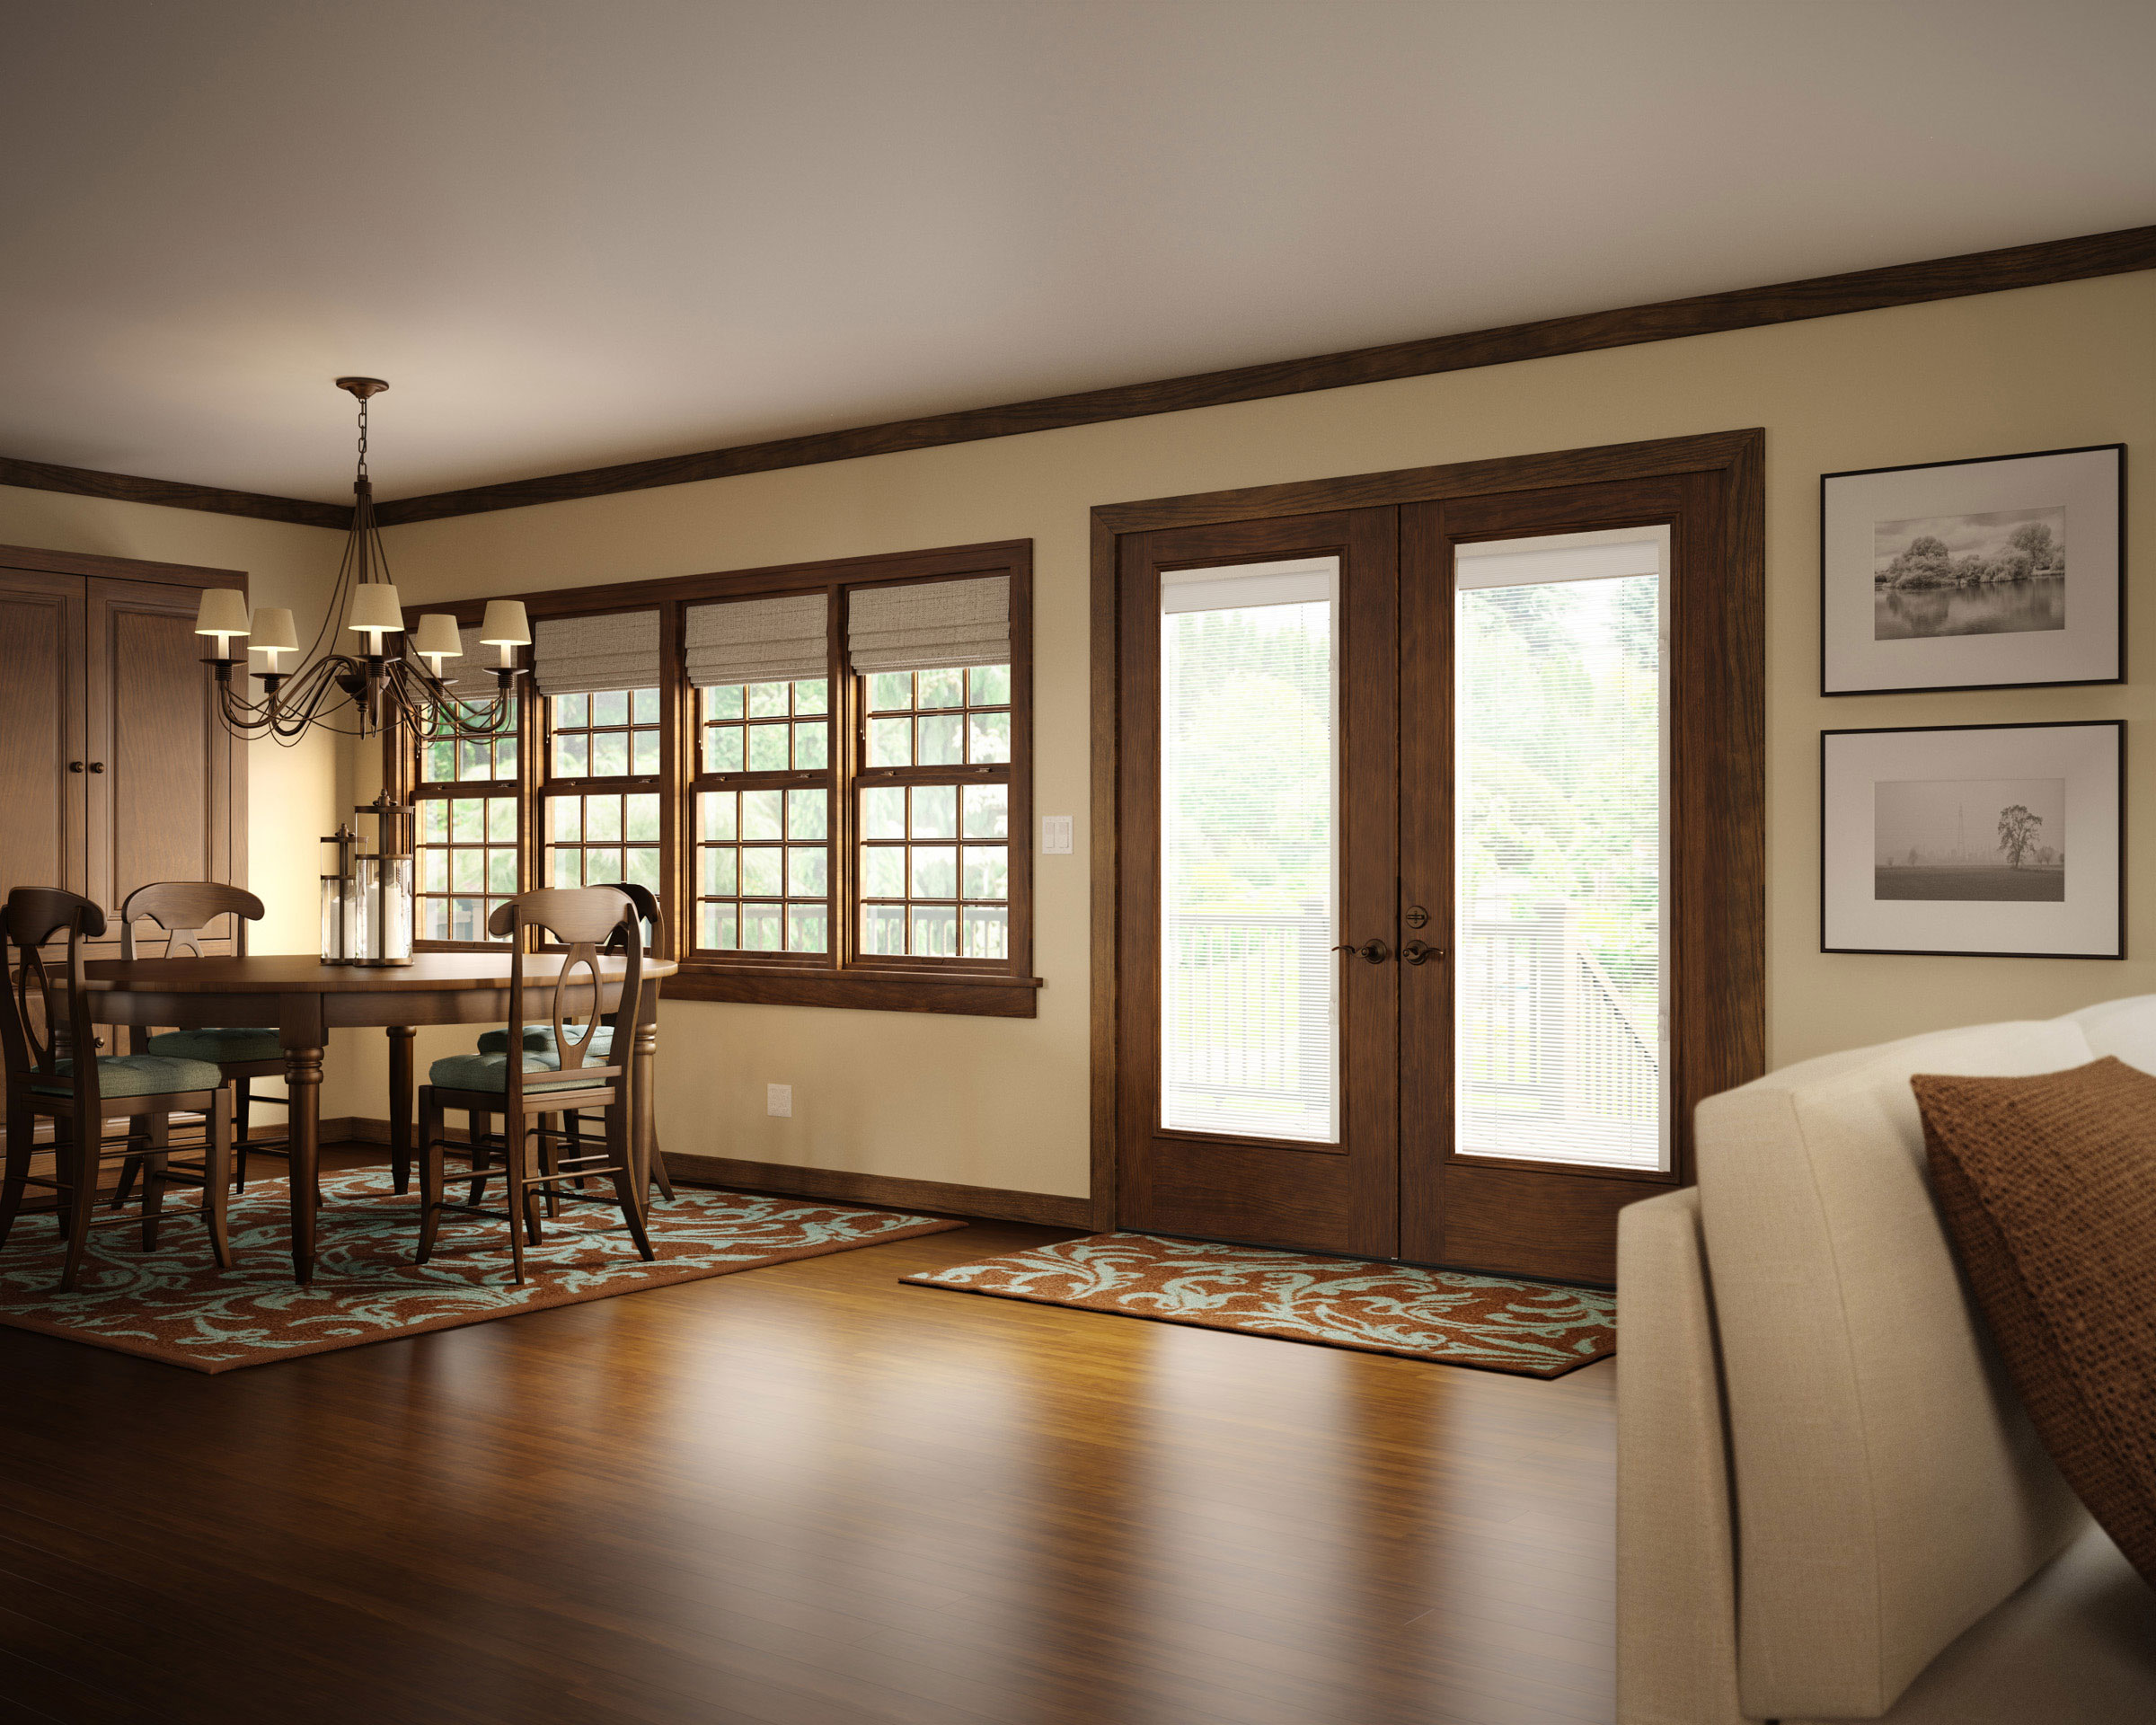 professional cgi image of dining space